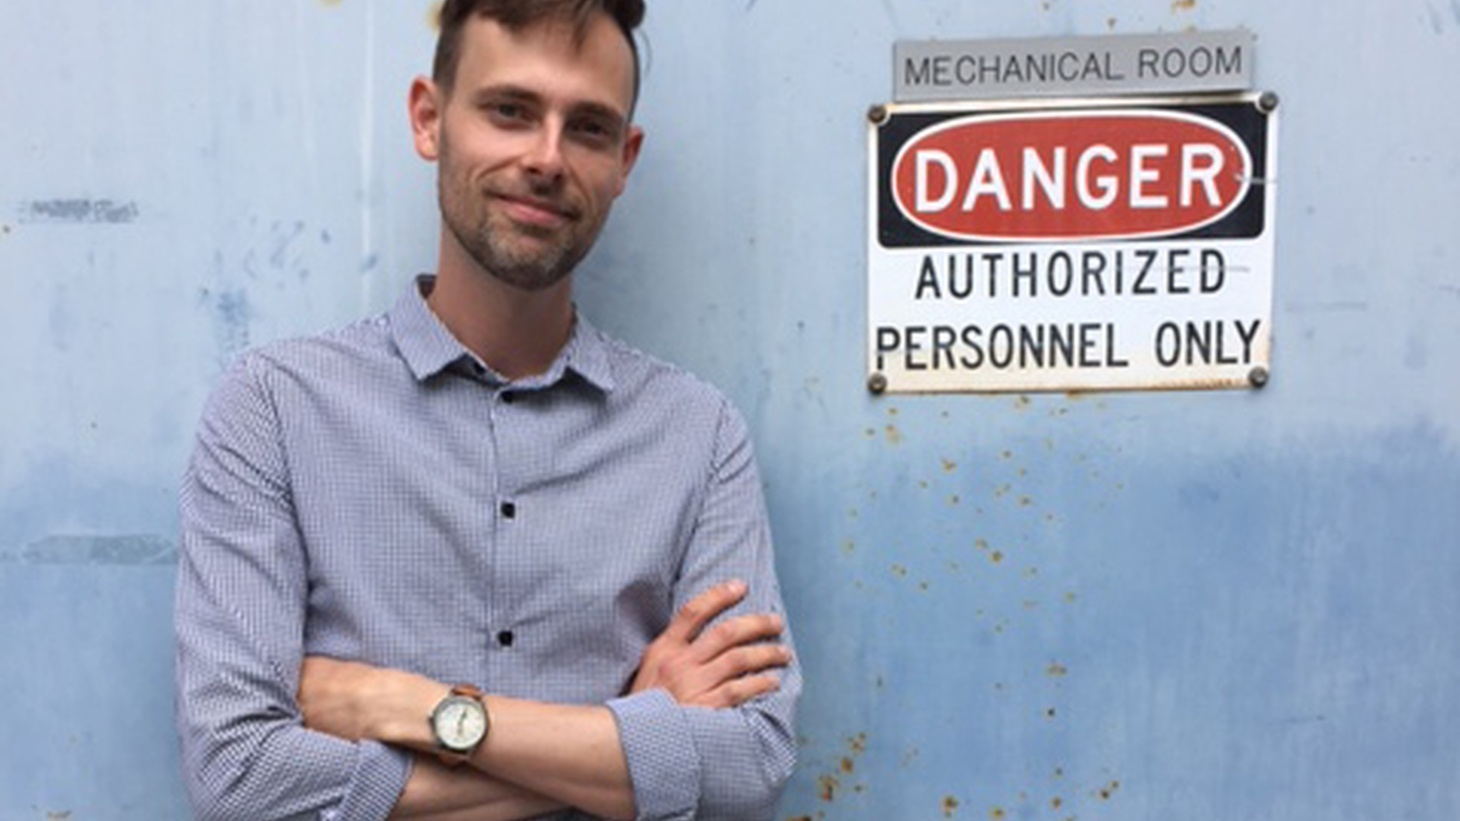 Author Ransom Riggs is best known for the New York Times bestseller Miss Peregrine's Home for Peculiar Children. The evocative imagery and haunting quality that define his writings can also be found in all of his song picks, from an old blues tune to Tom Waits.